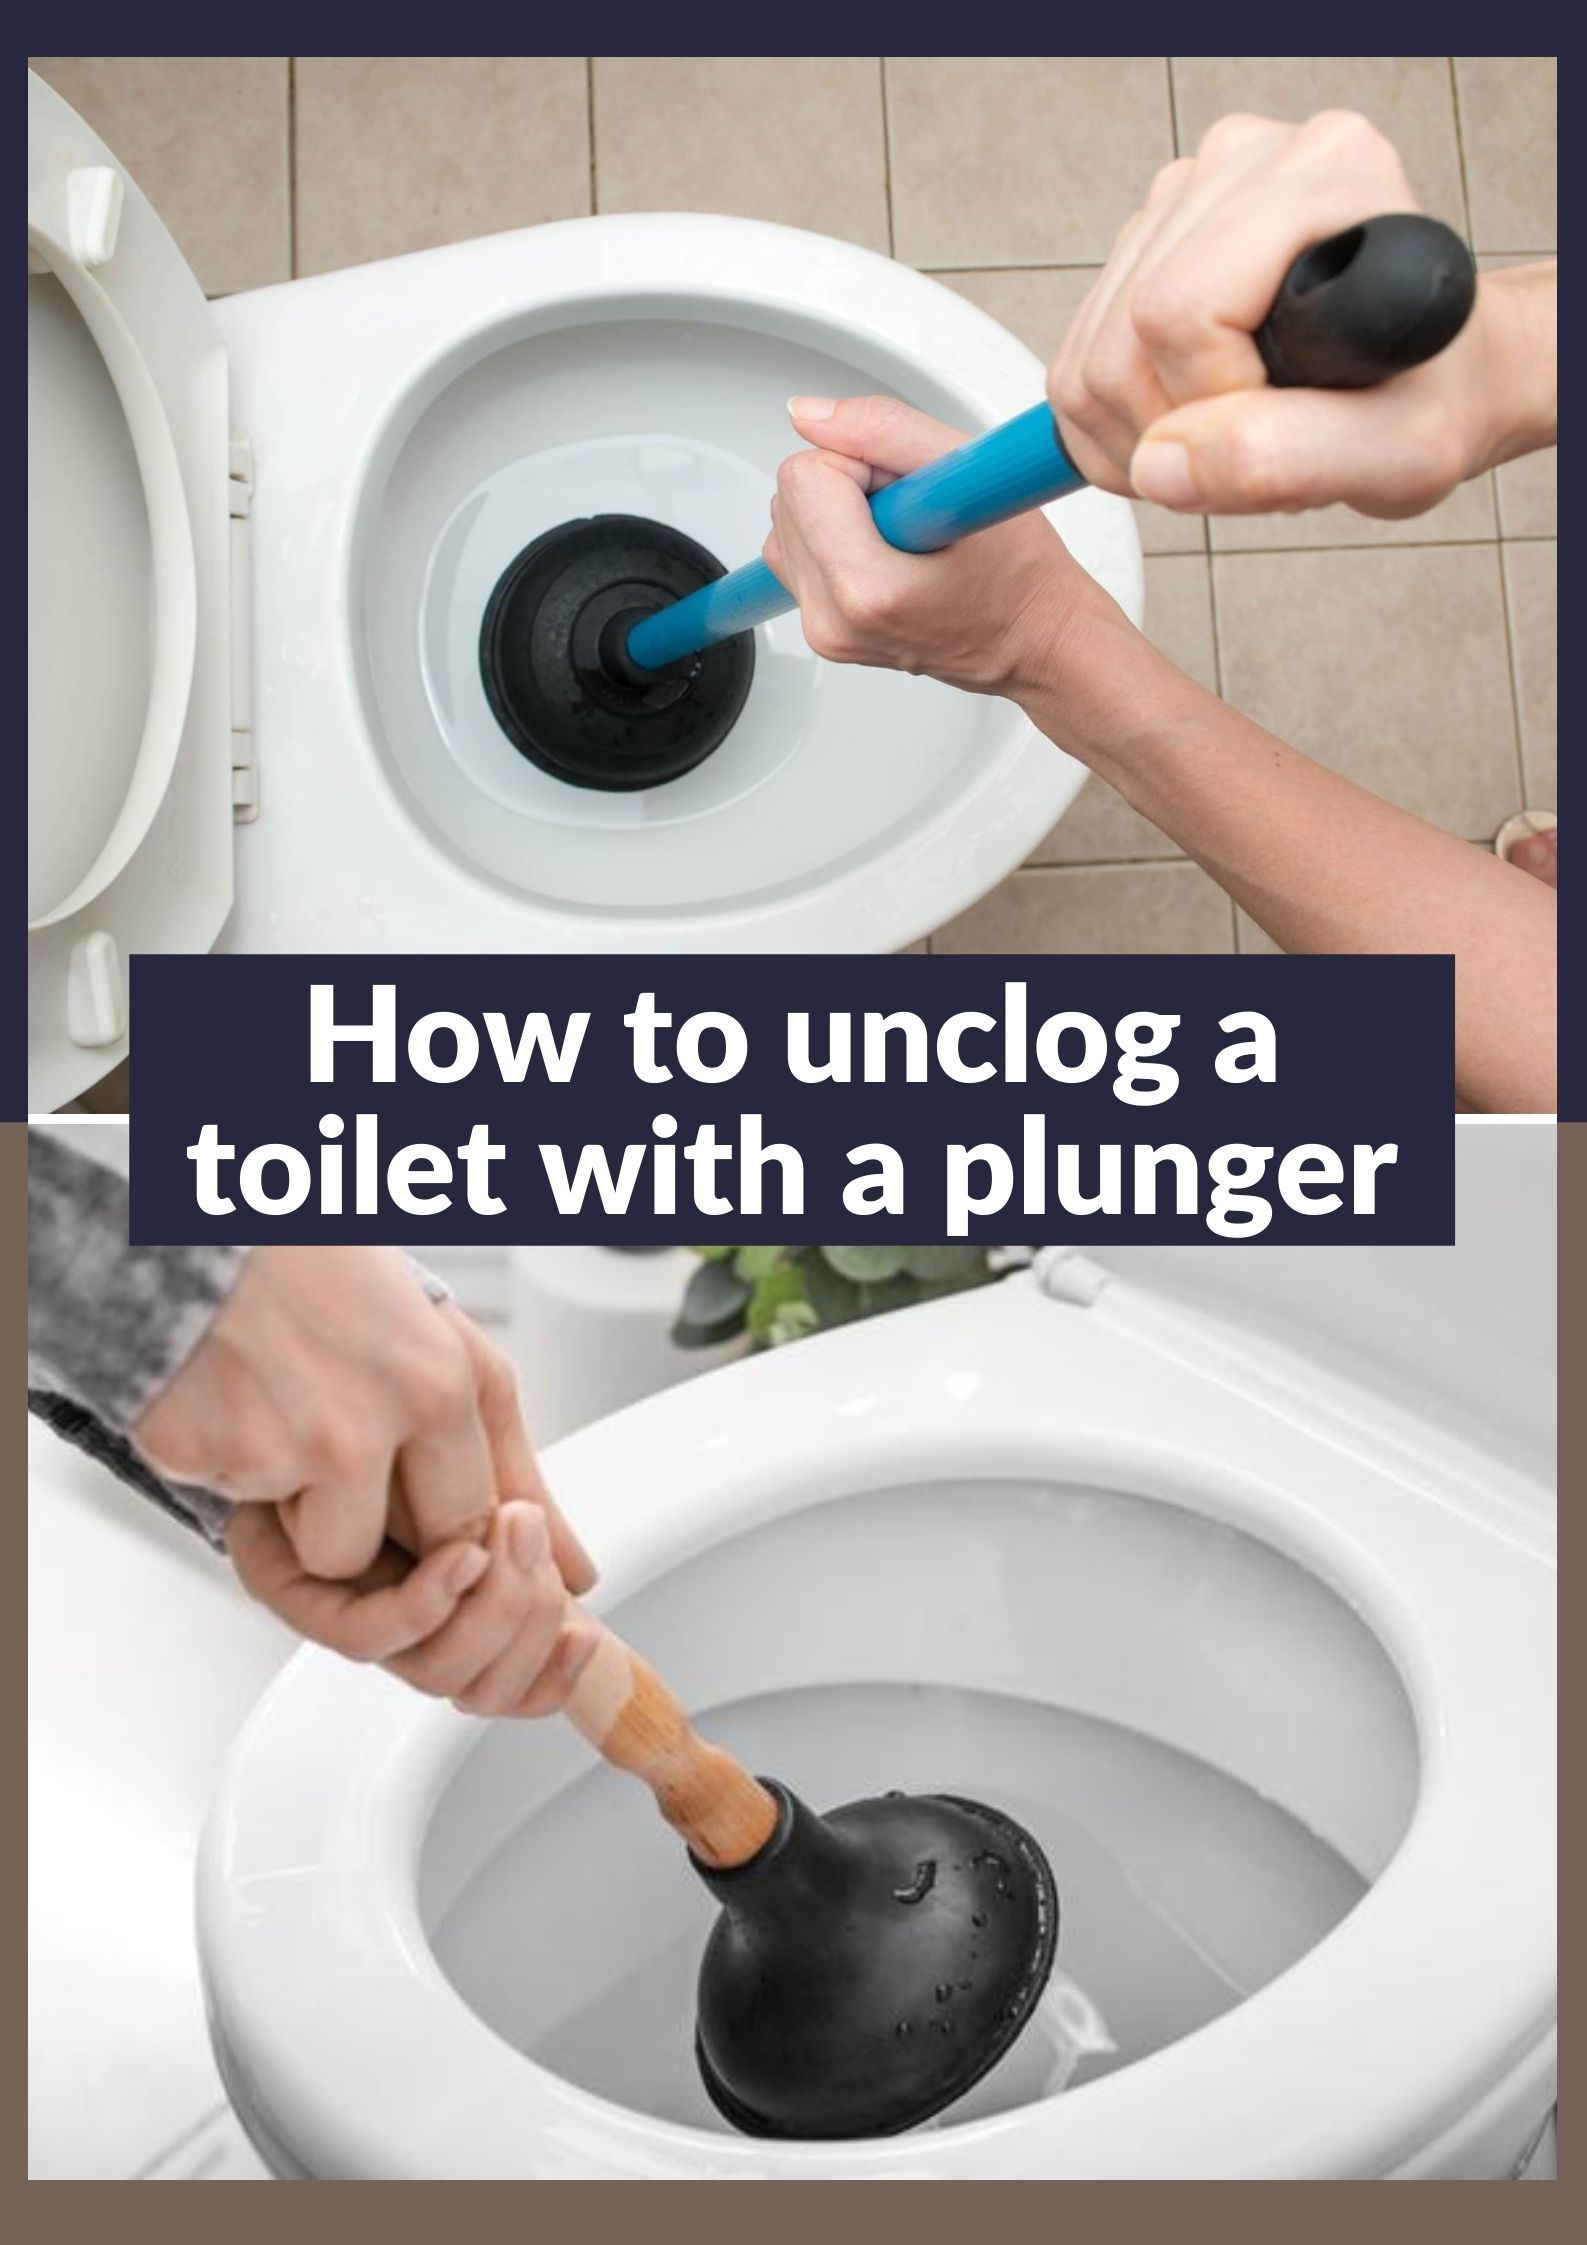 How To Unclog A Toilet With A Plunger An Easy Effective Tricks In 2020 Toilet Cleaning Hacks How To Unclog Toilet Unclog